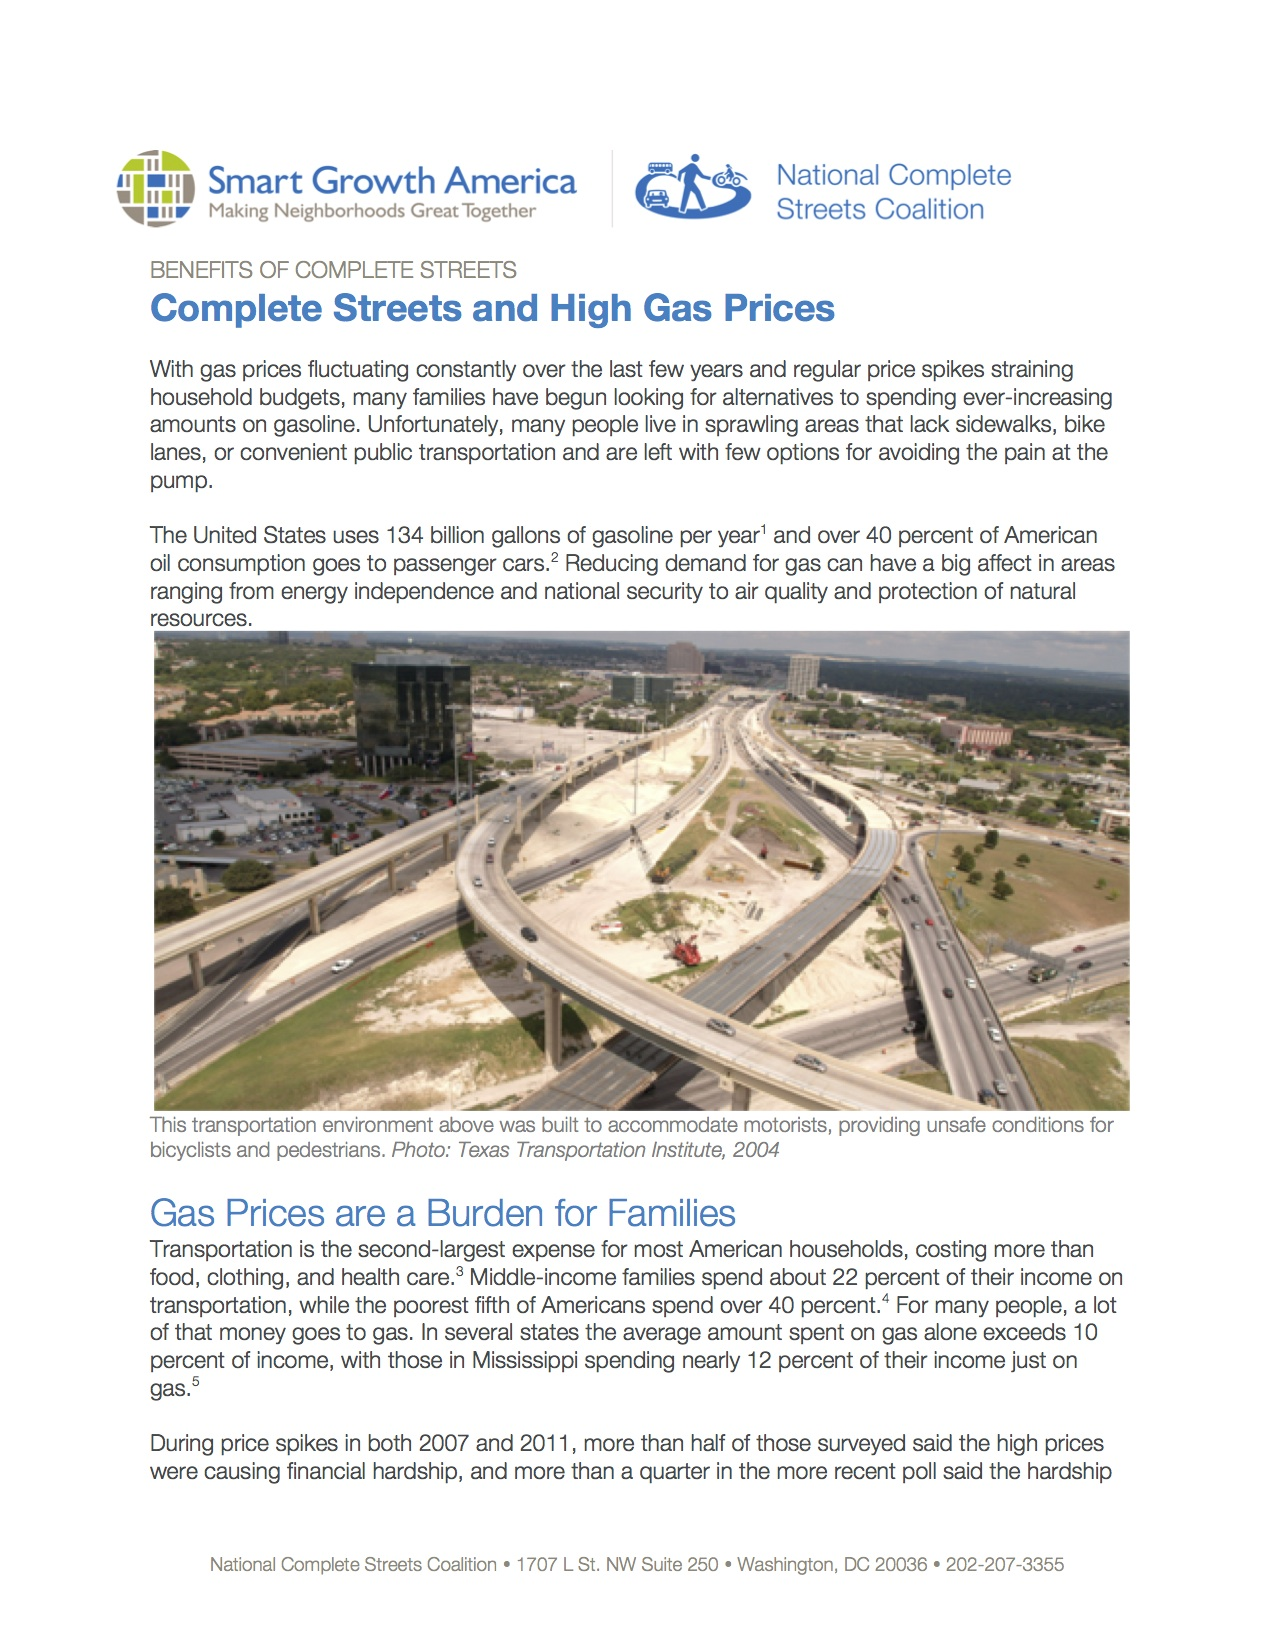 Gas Prices: Benefits of Complete Streets